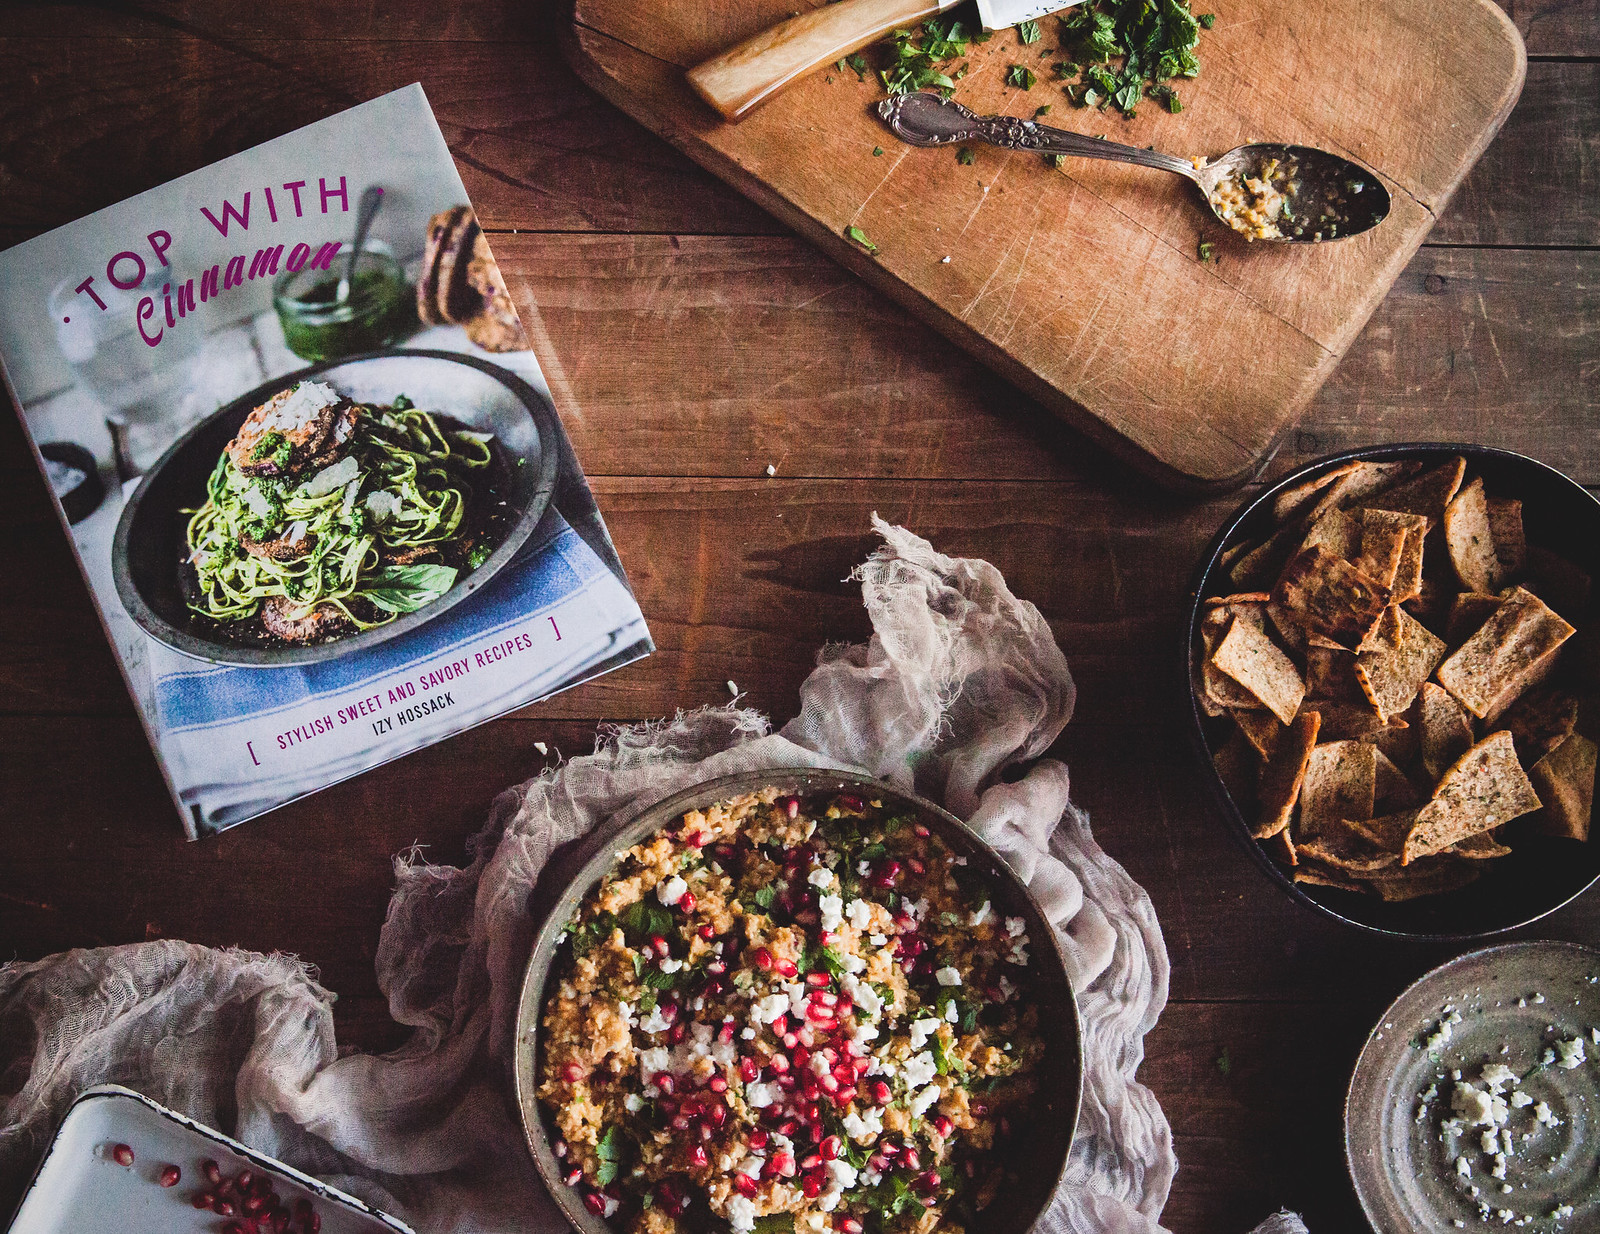 Chickpea & Pomegranate Dip + Tasty Pitta Chips, from the Top With Cinnamon cookbook